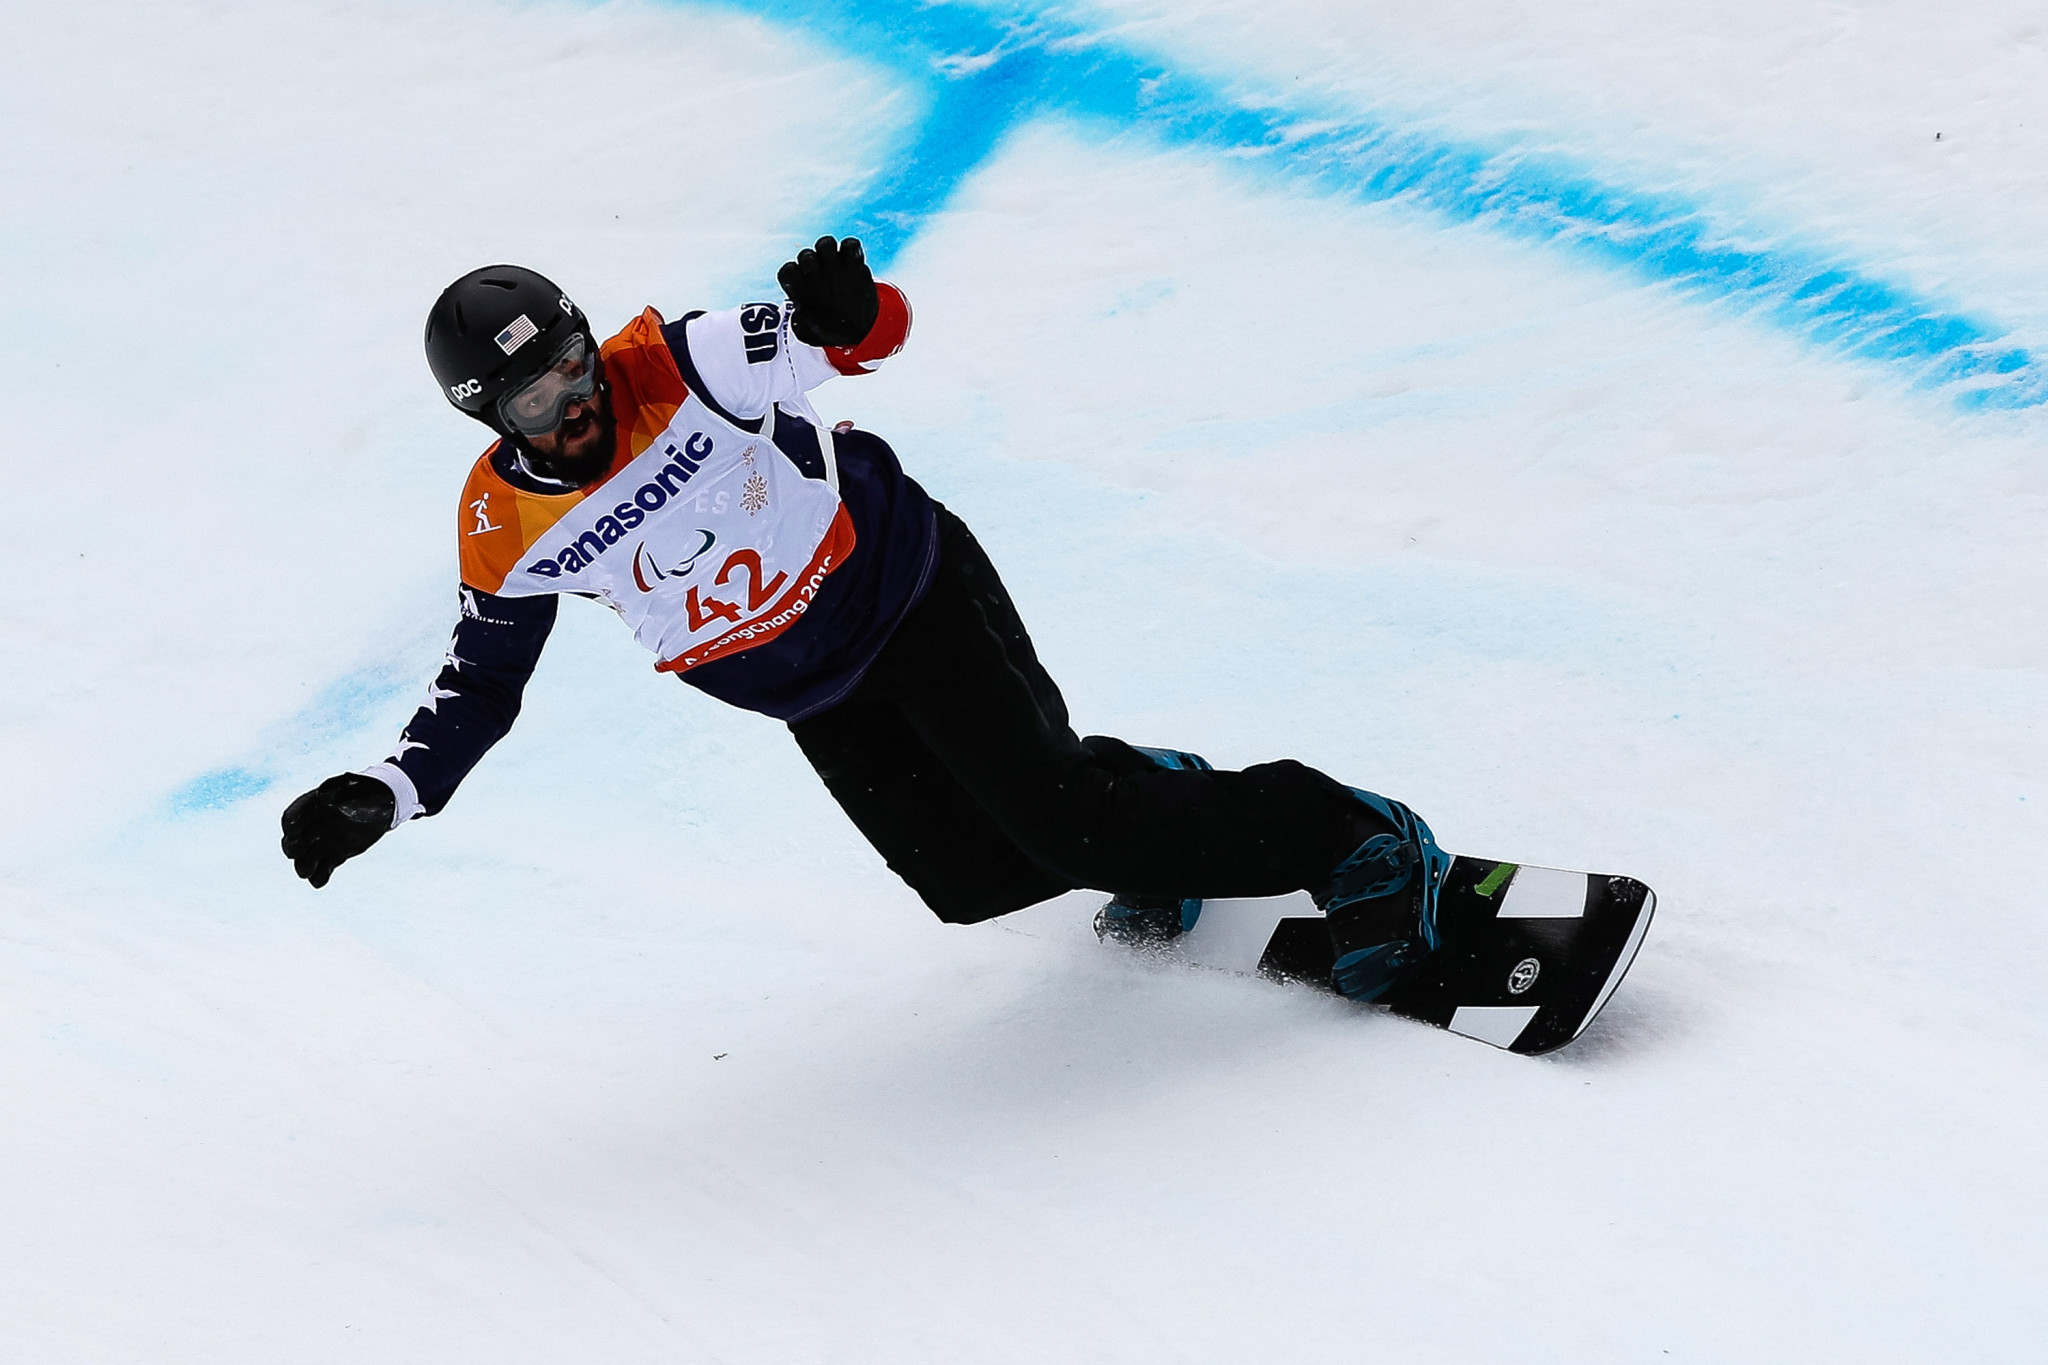 Keith Gabel secured one of two gold medals for the United States on the first of two days of racing at the World Para Snowboard World Cup Finals ©Getty Images